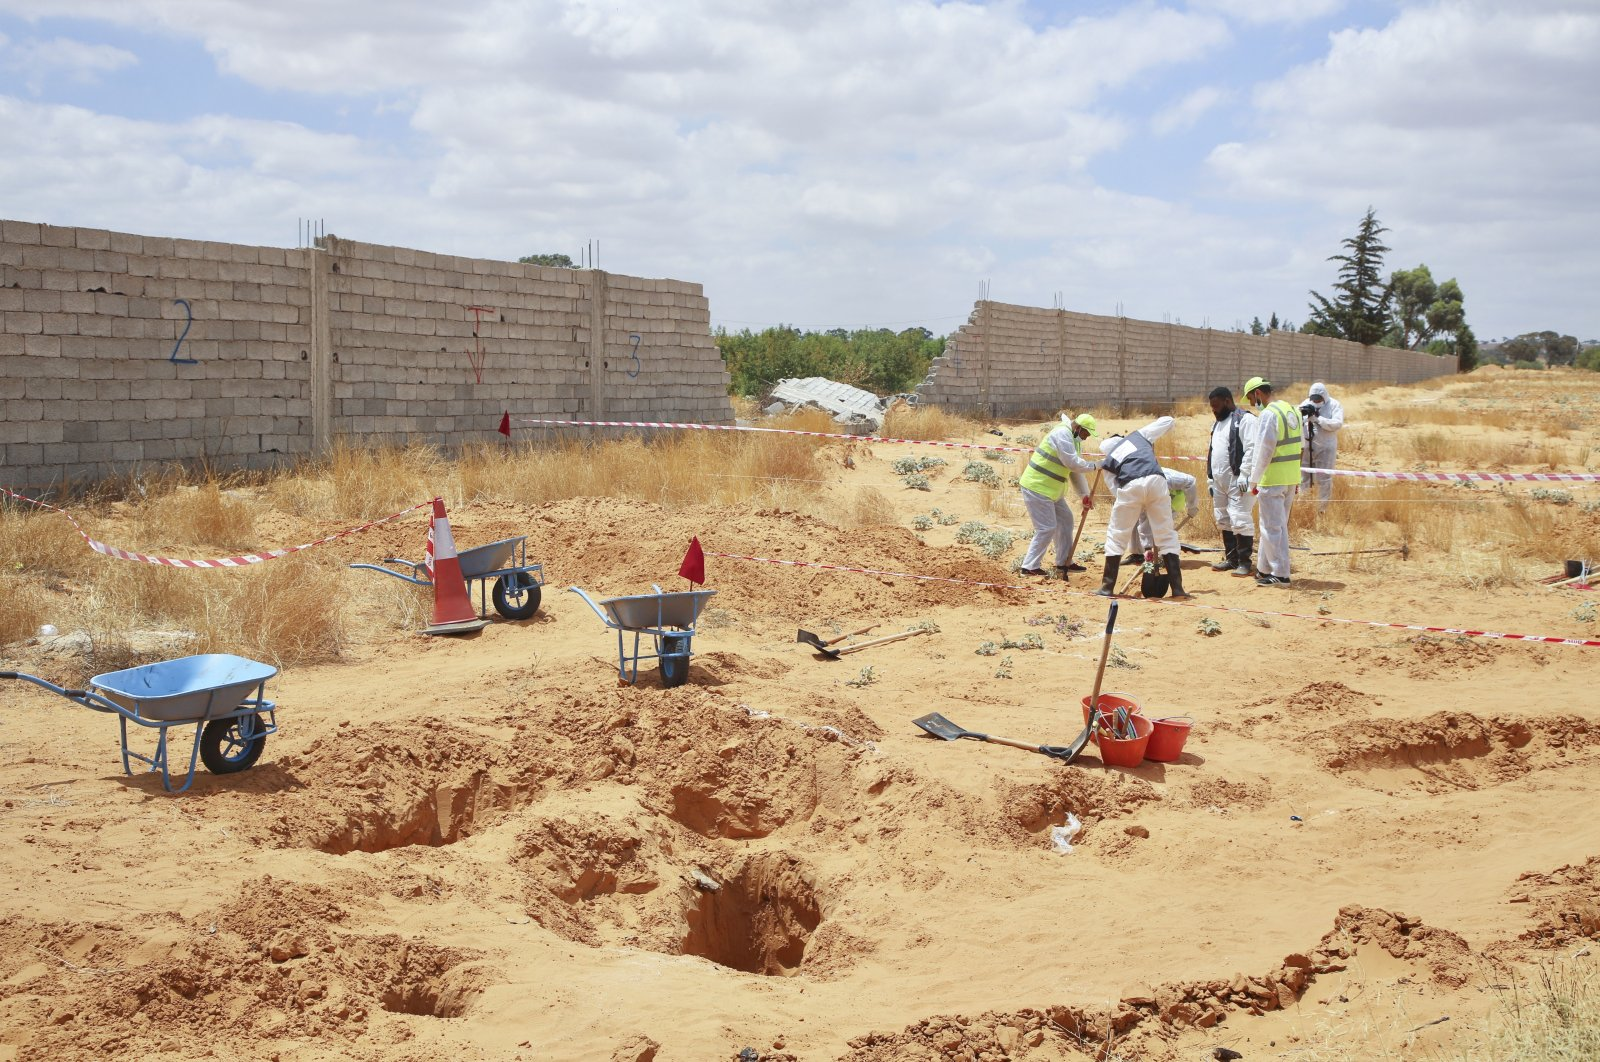 Libyan Ministry of Justice employees dig out at a site of a suspected mass grave in the town of Tarhuna, Libya, June 23, 2020. (AP File Photo)